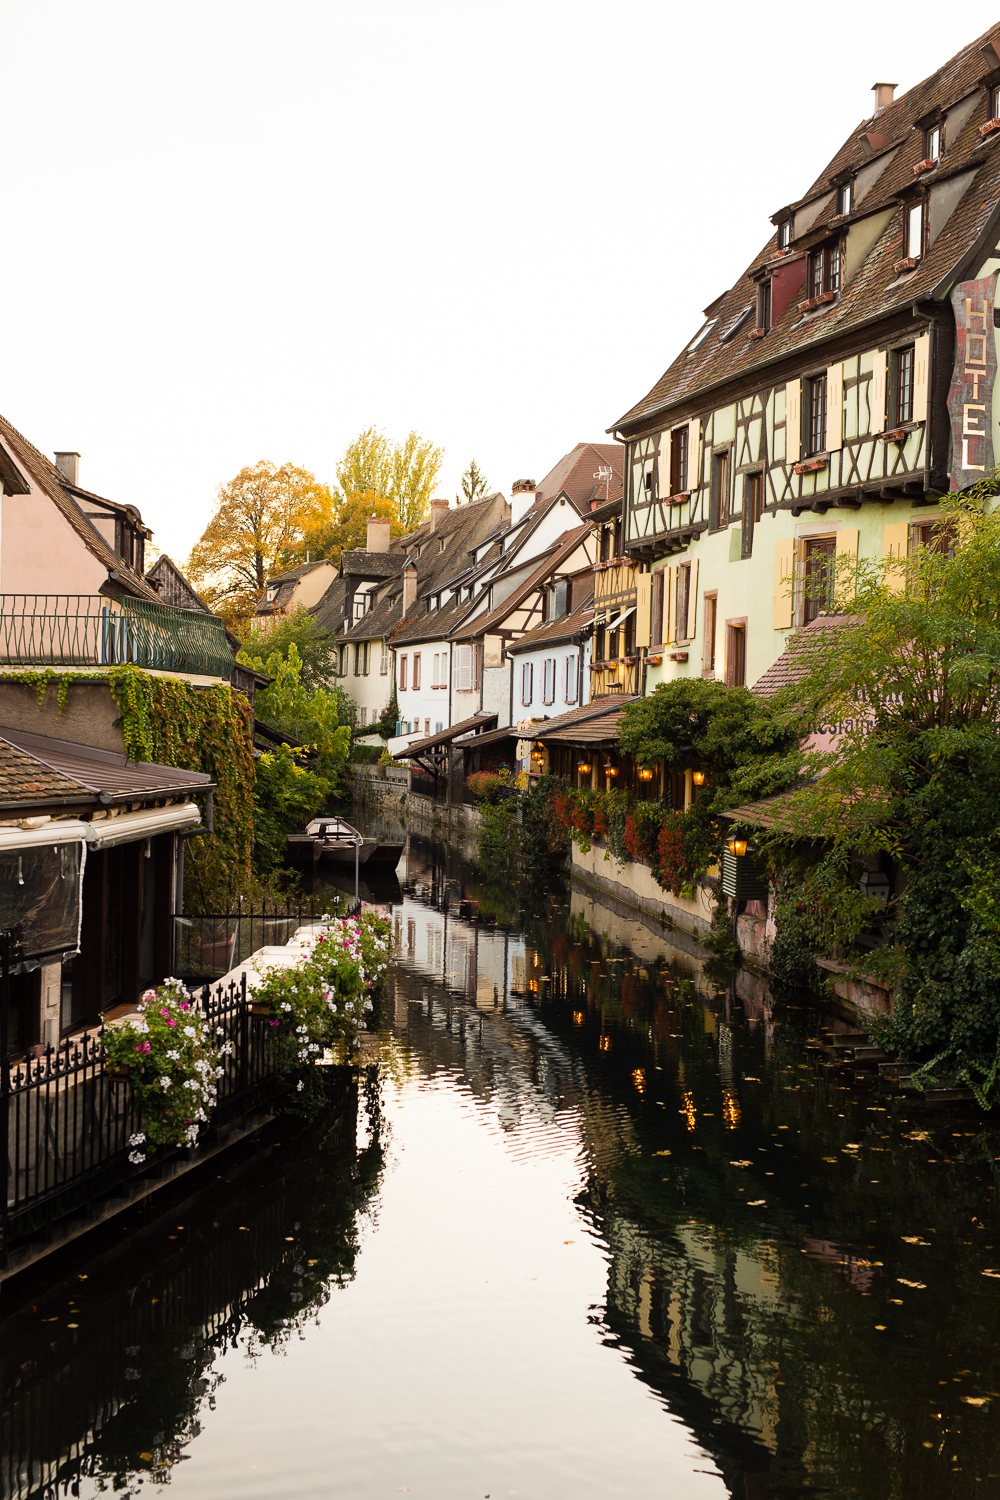 weekend-in-alsace-Colmar-best-place-to-visit-france-3.jpg